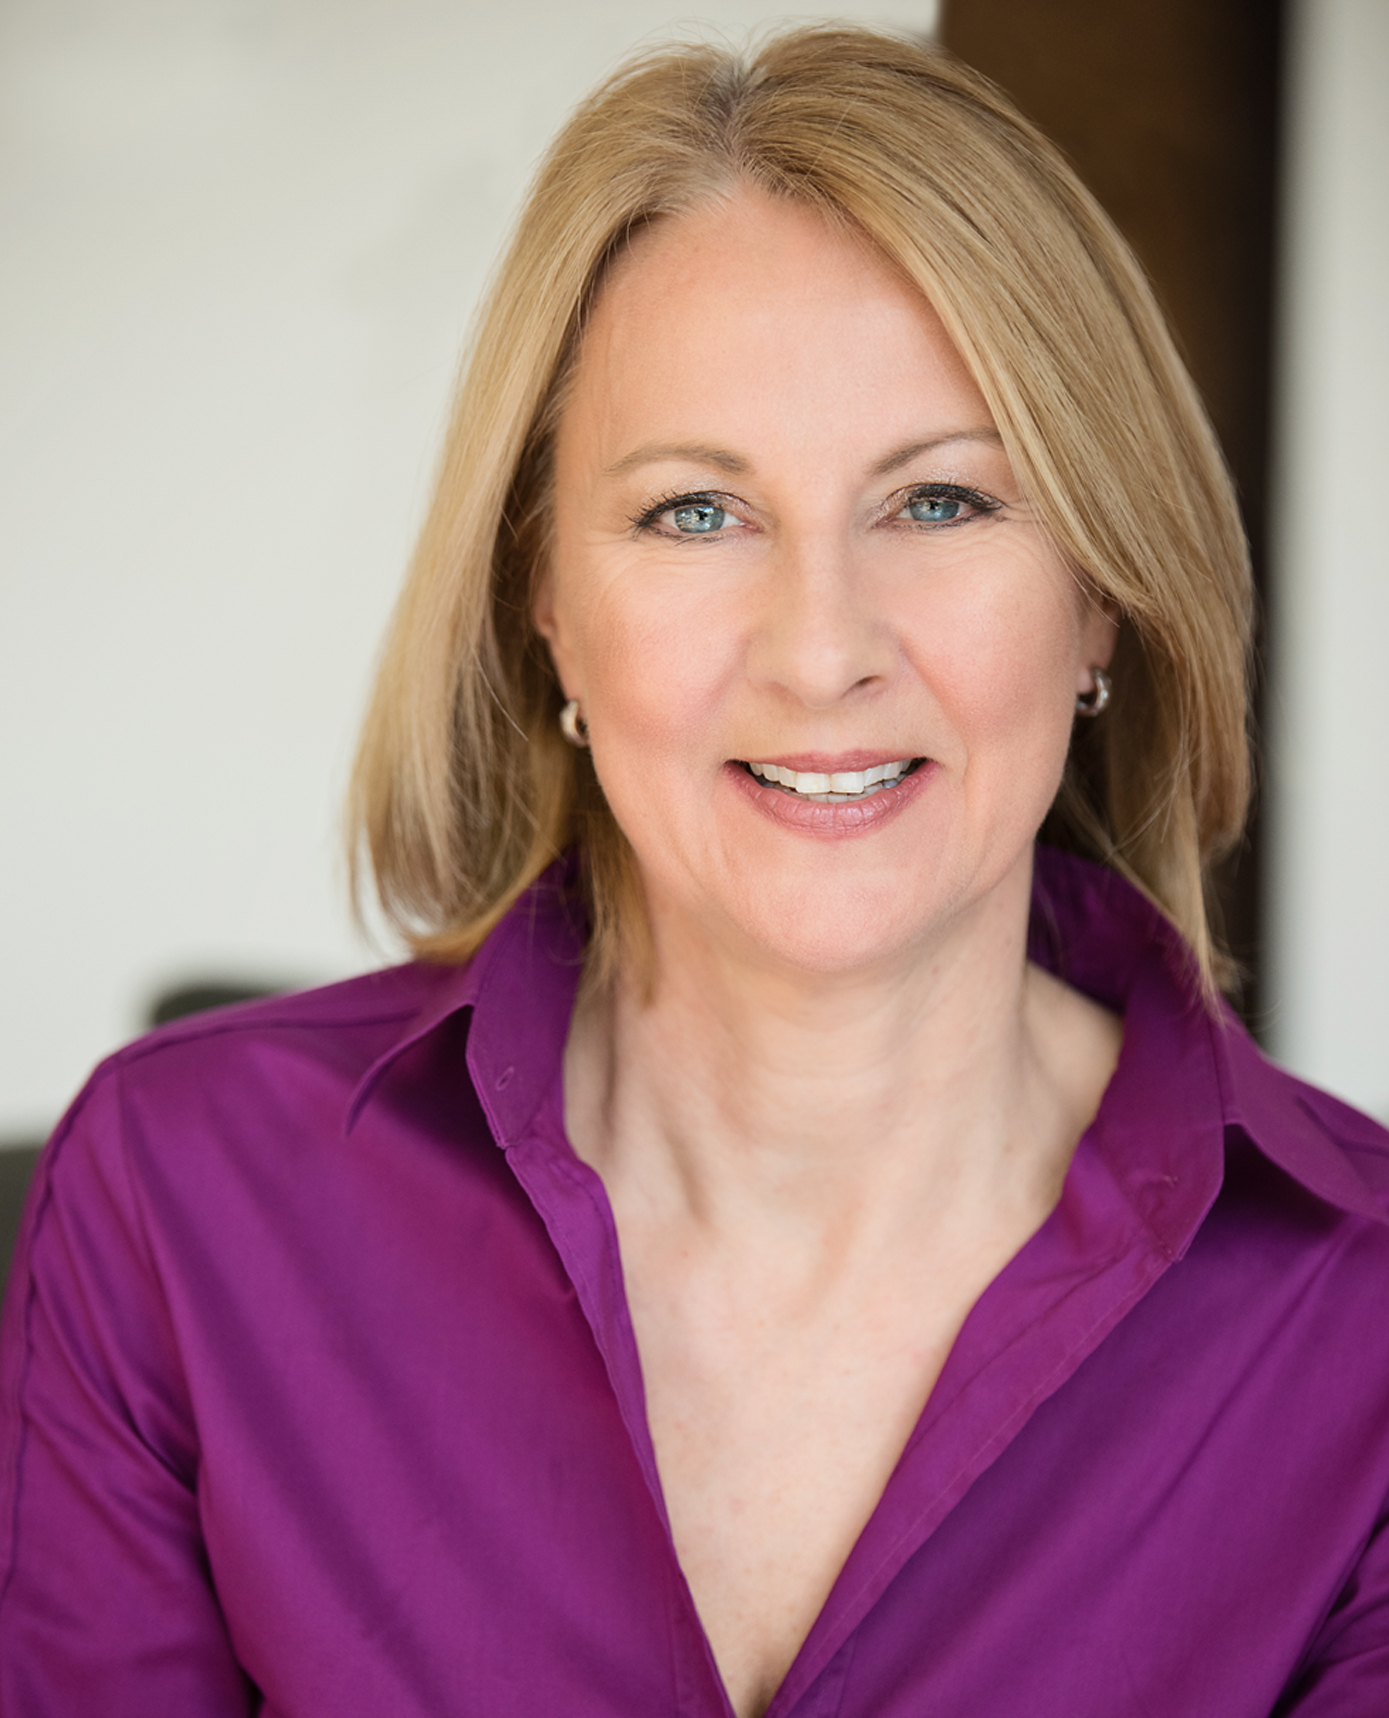 Louise Sheppard    Louise builds trusting relationships with clients, supporting and challenging them to reflect upon their choices and take the best path forward.